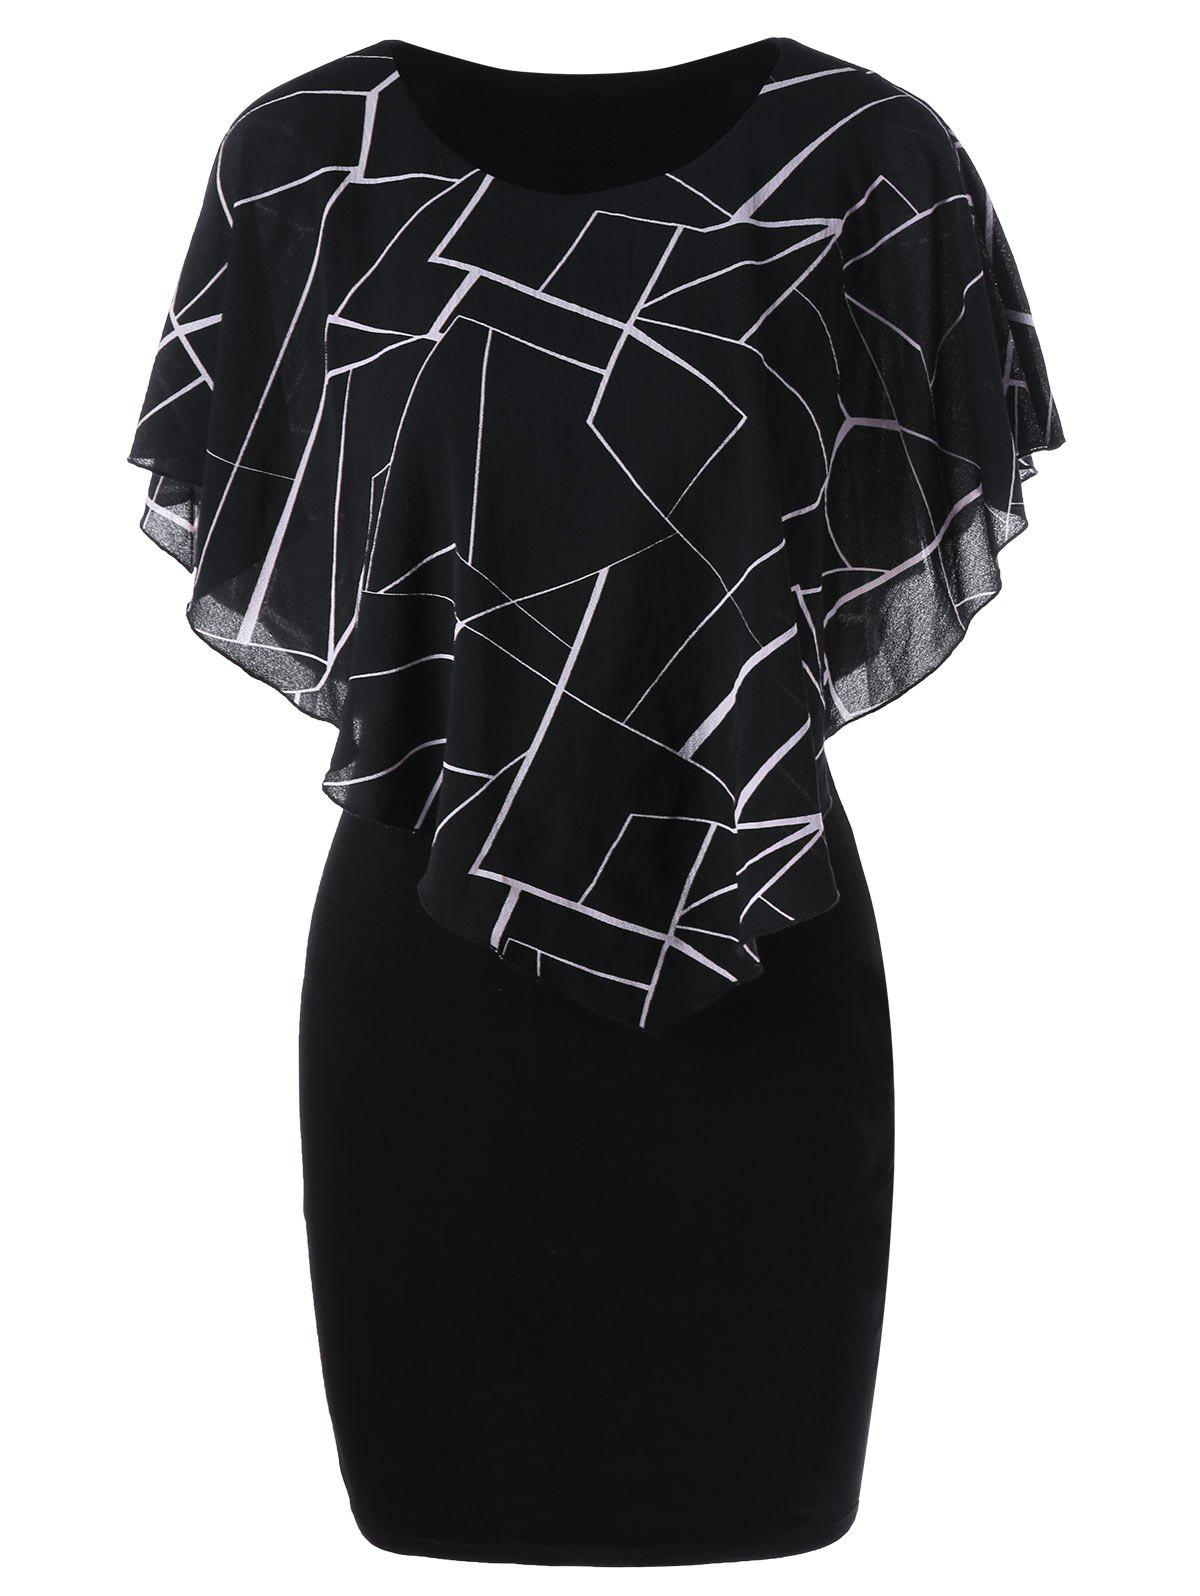 Ruffles Printed Mini Tight Fitted DressWOMEN<br><br>Size: M; Color: BLACK; Style: Casual; Material: Polyester; Silhouette: Bodycon; Dresses Length: Mini; Neckline: Round Collar; Sleeve Length: Short Sleeves; Pattern Type: Print; With Belt: No; Season: Summer; Weight: 0.3000kg; Package Contents: 1 x Dress;